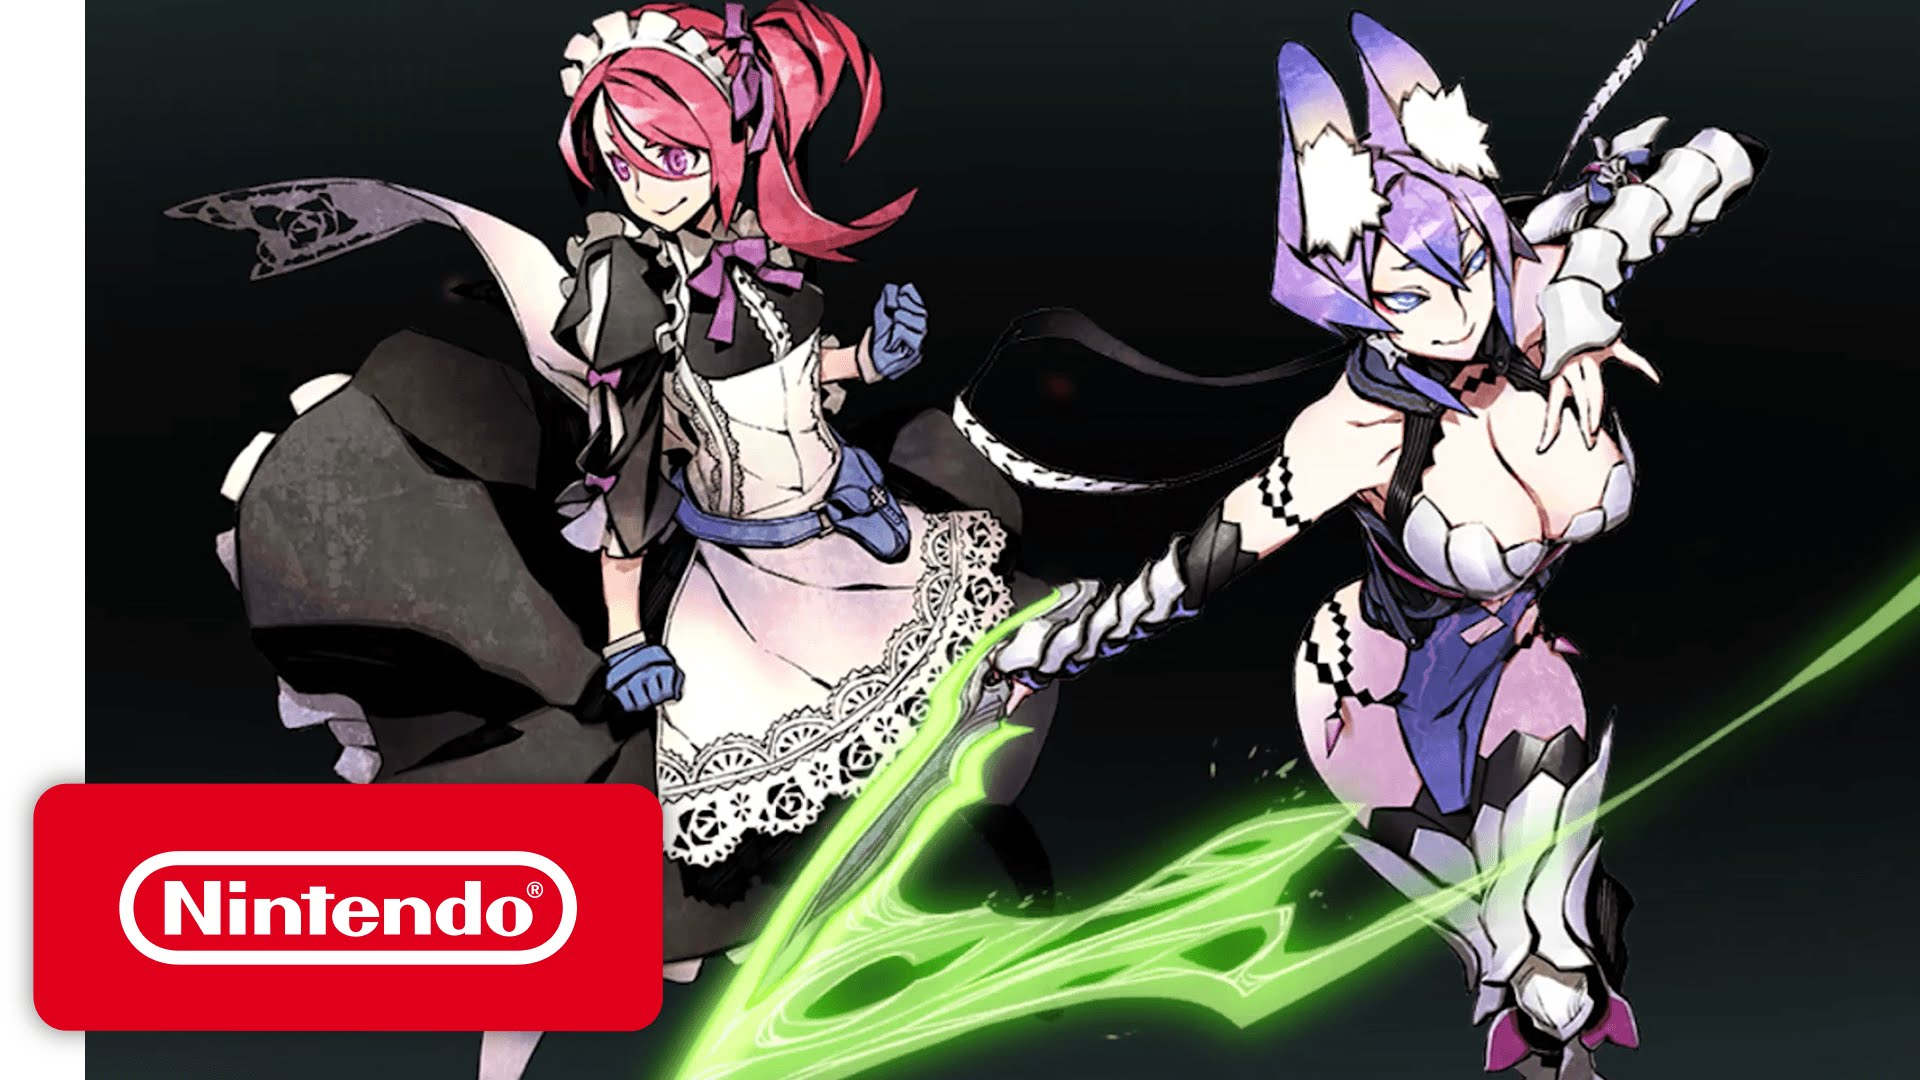 7th Dragon III Code: VFD Trailer